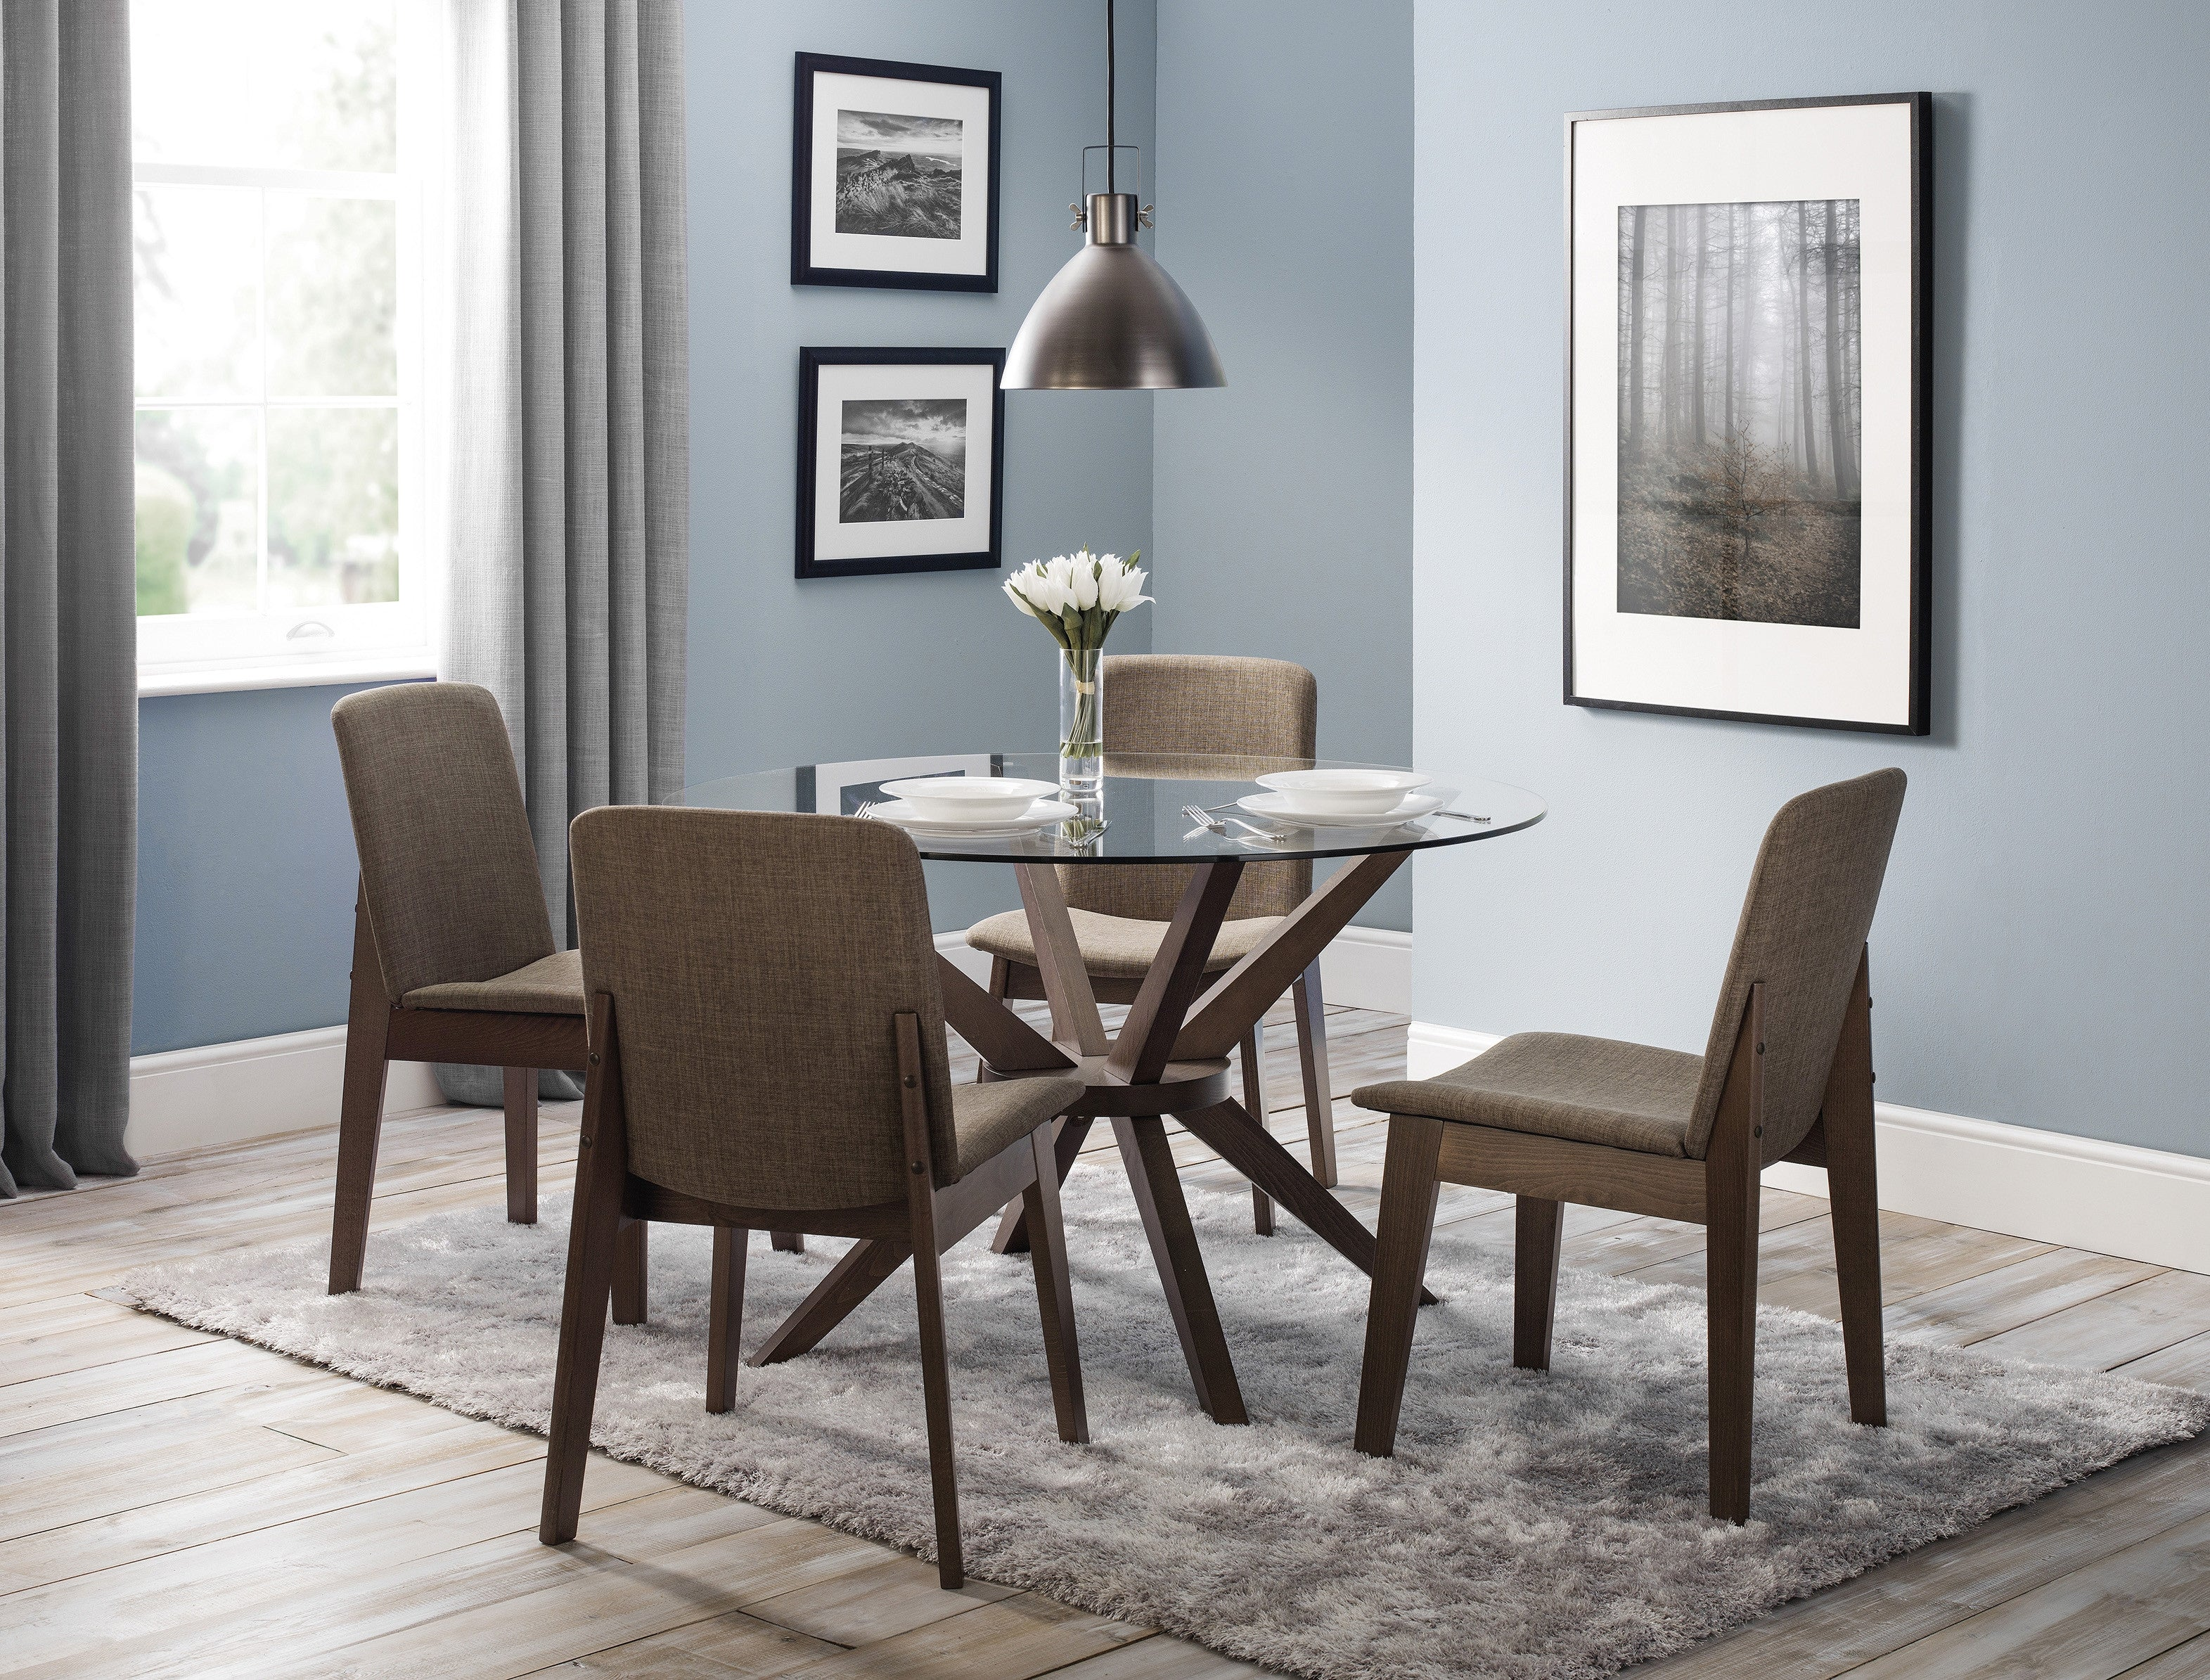 Picture of: Kensington Round Glass Dining Table 4 Chairs Plfs London Property Letting Furniture